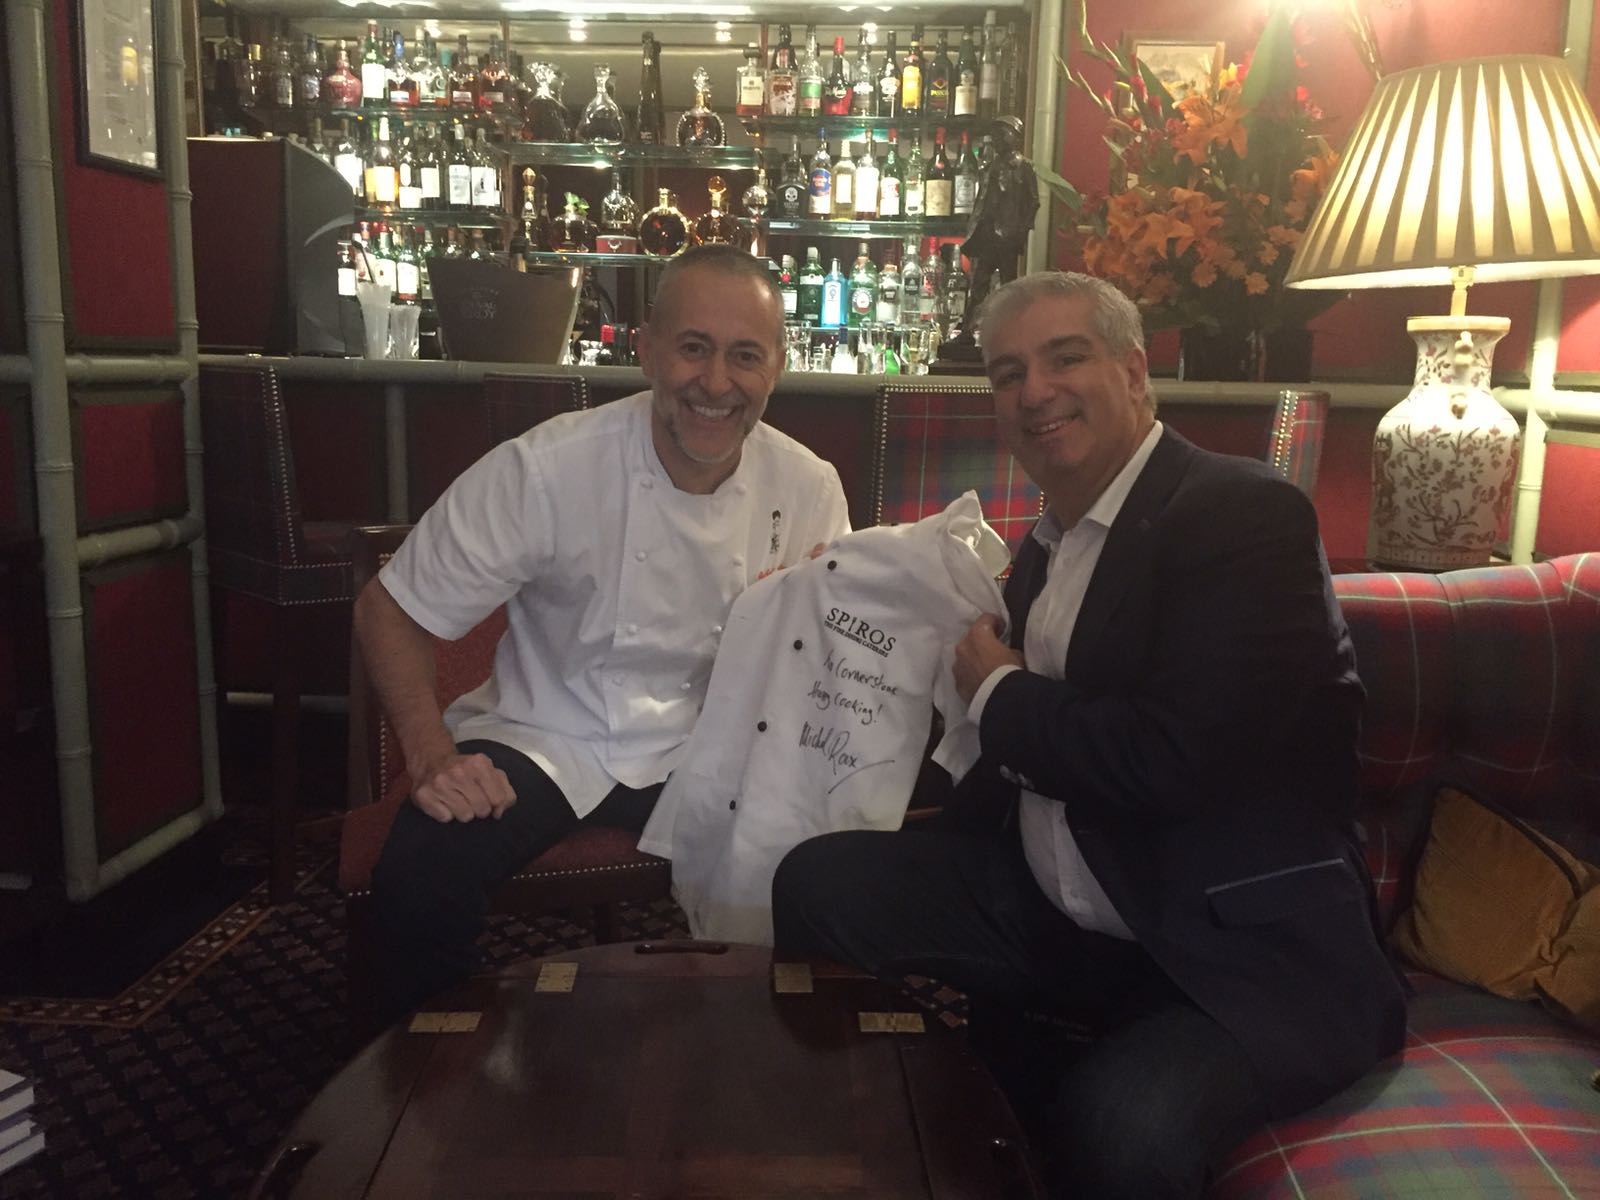 Spiro meets Michel Roux Jr. in London